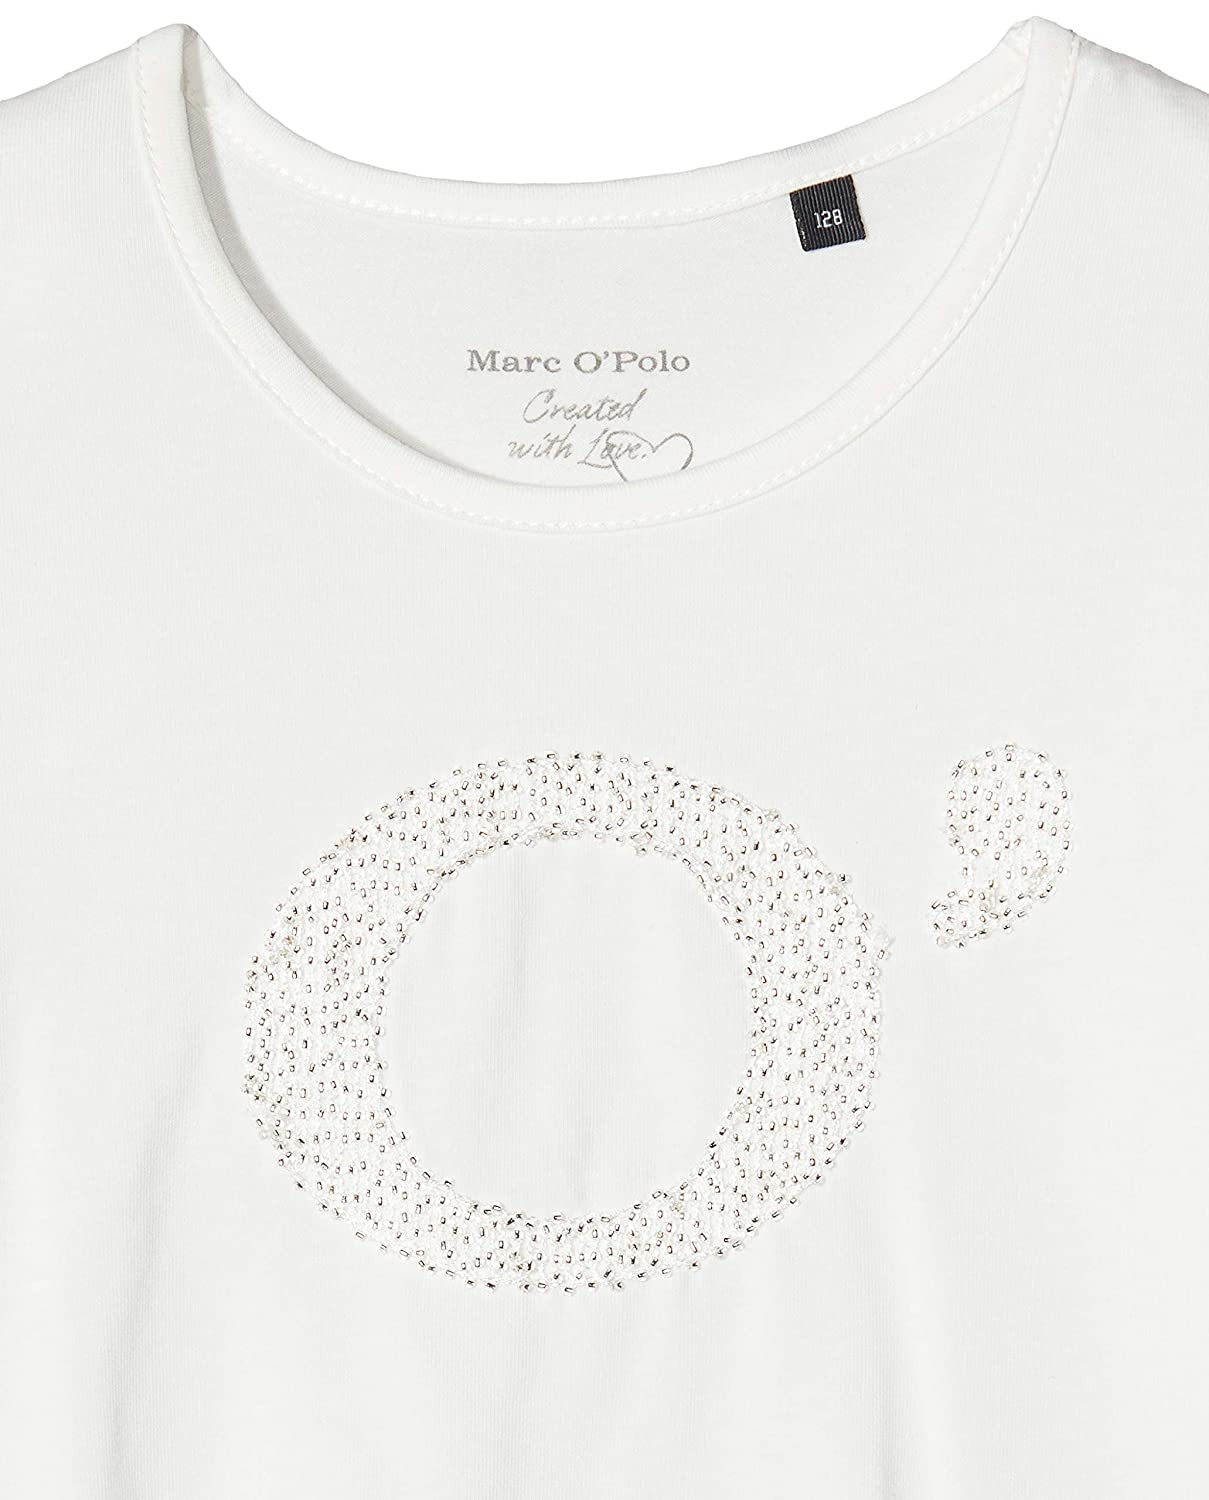 Marc O Polo Kids Camisa Manga Larga para Niñas: Amazon.es: Ropa y ...